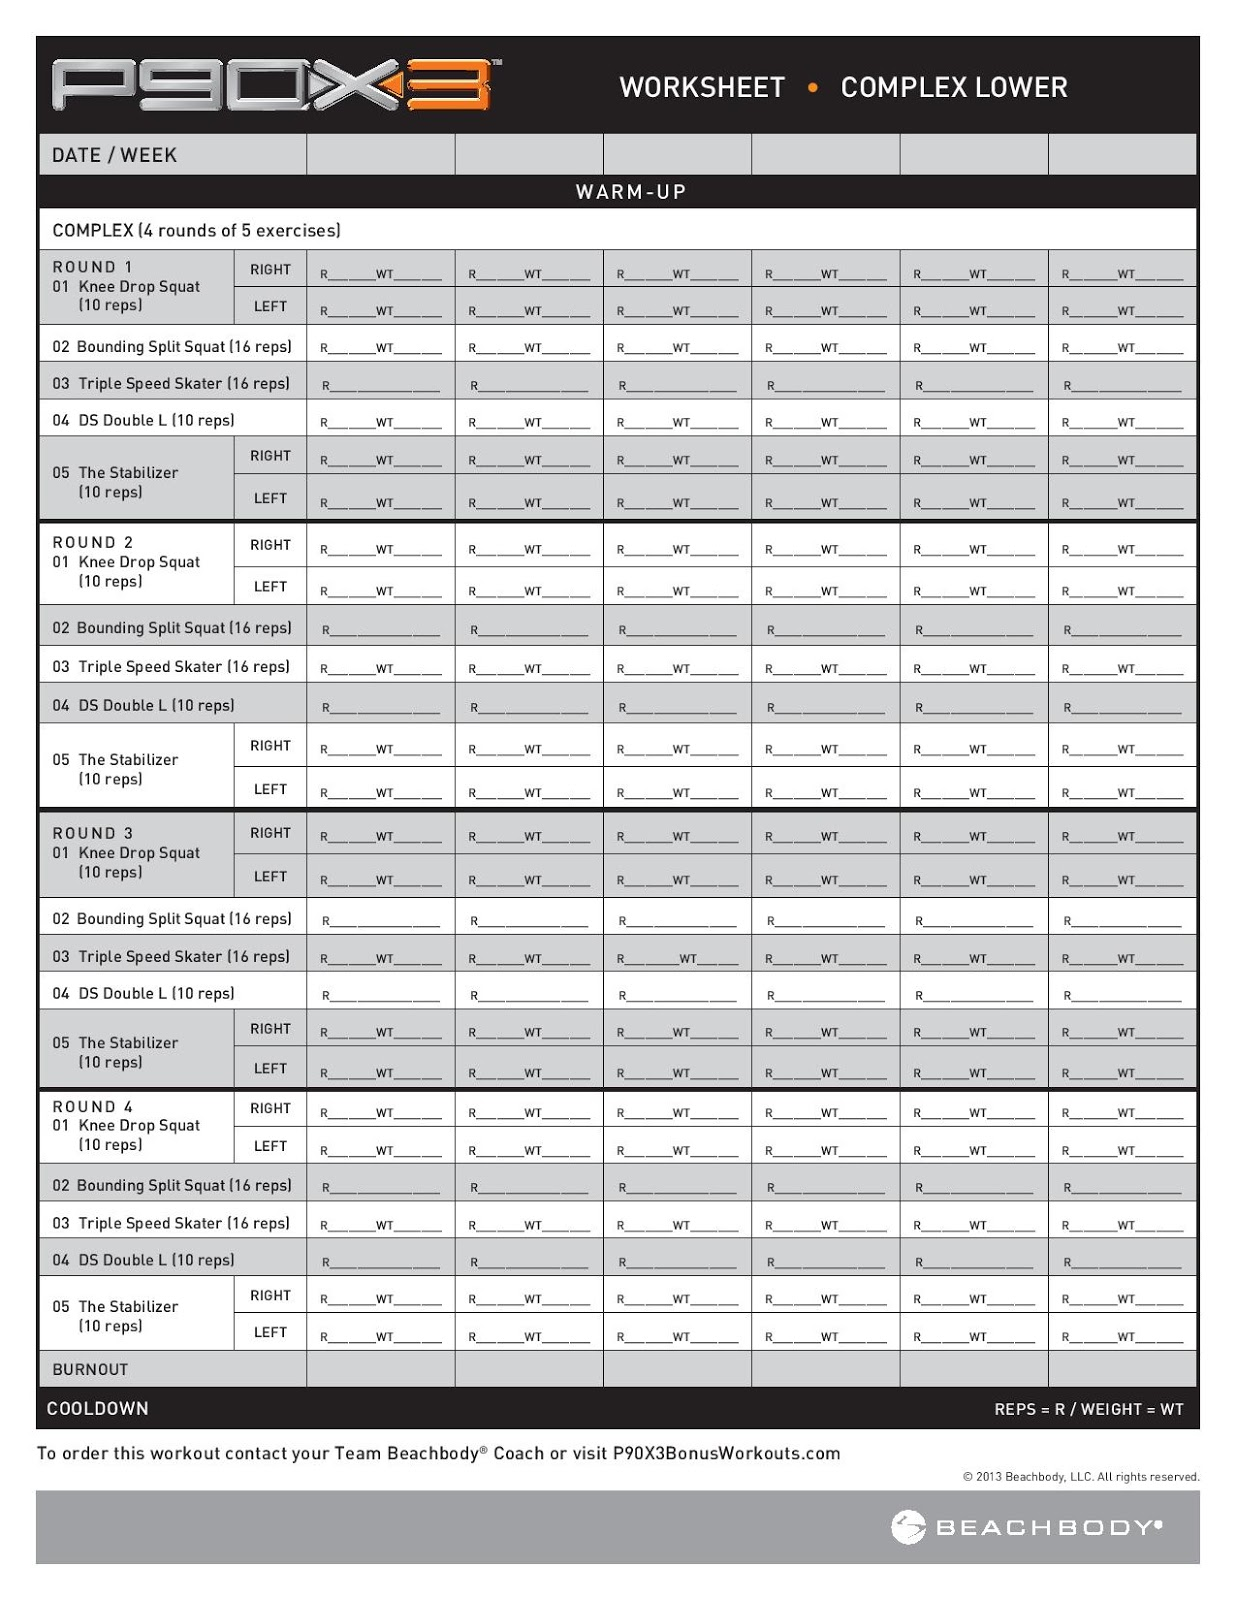 Worksheets P90x3 Worksheets p90x3 worksheets workouts here below is the worksheet for eccentric upper